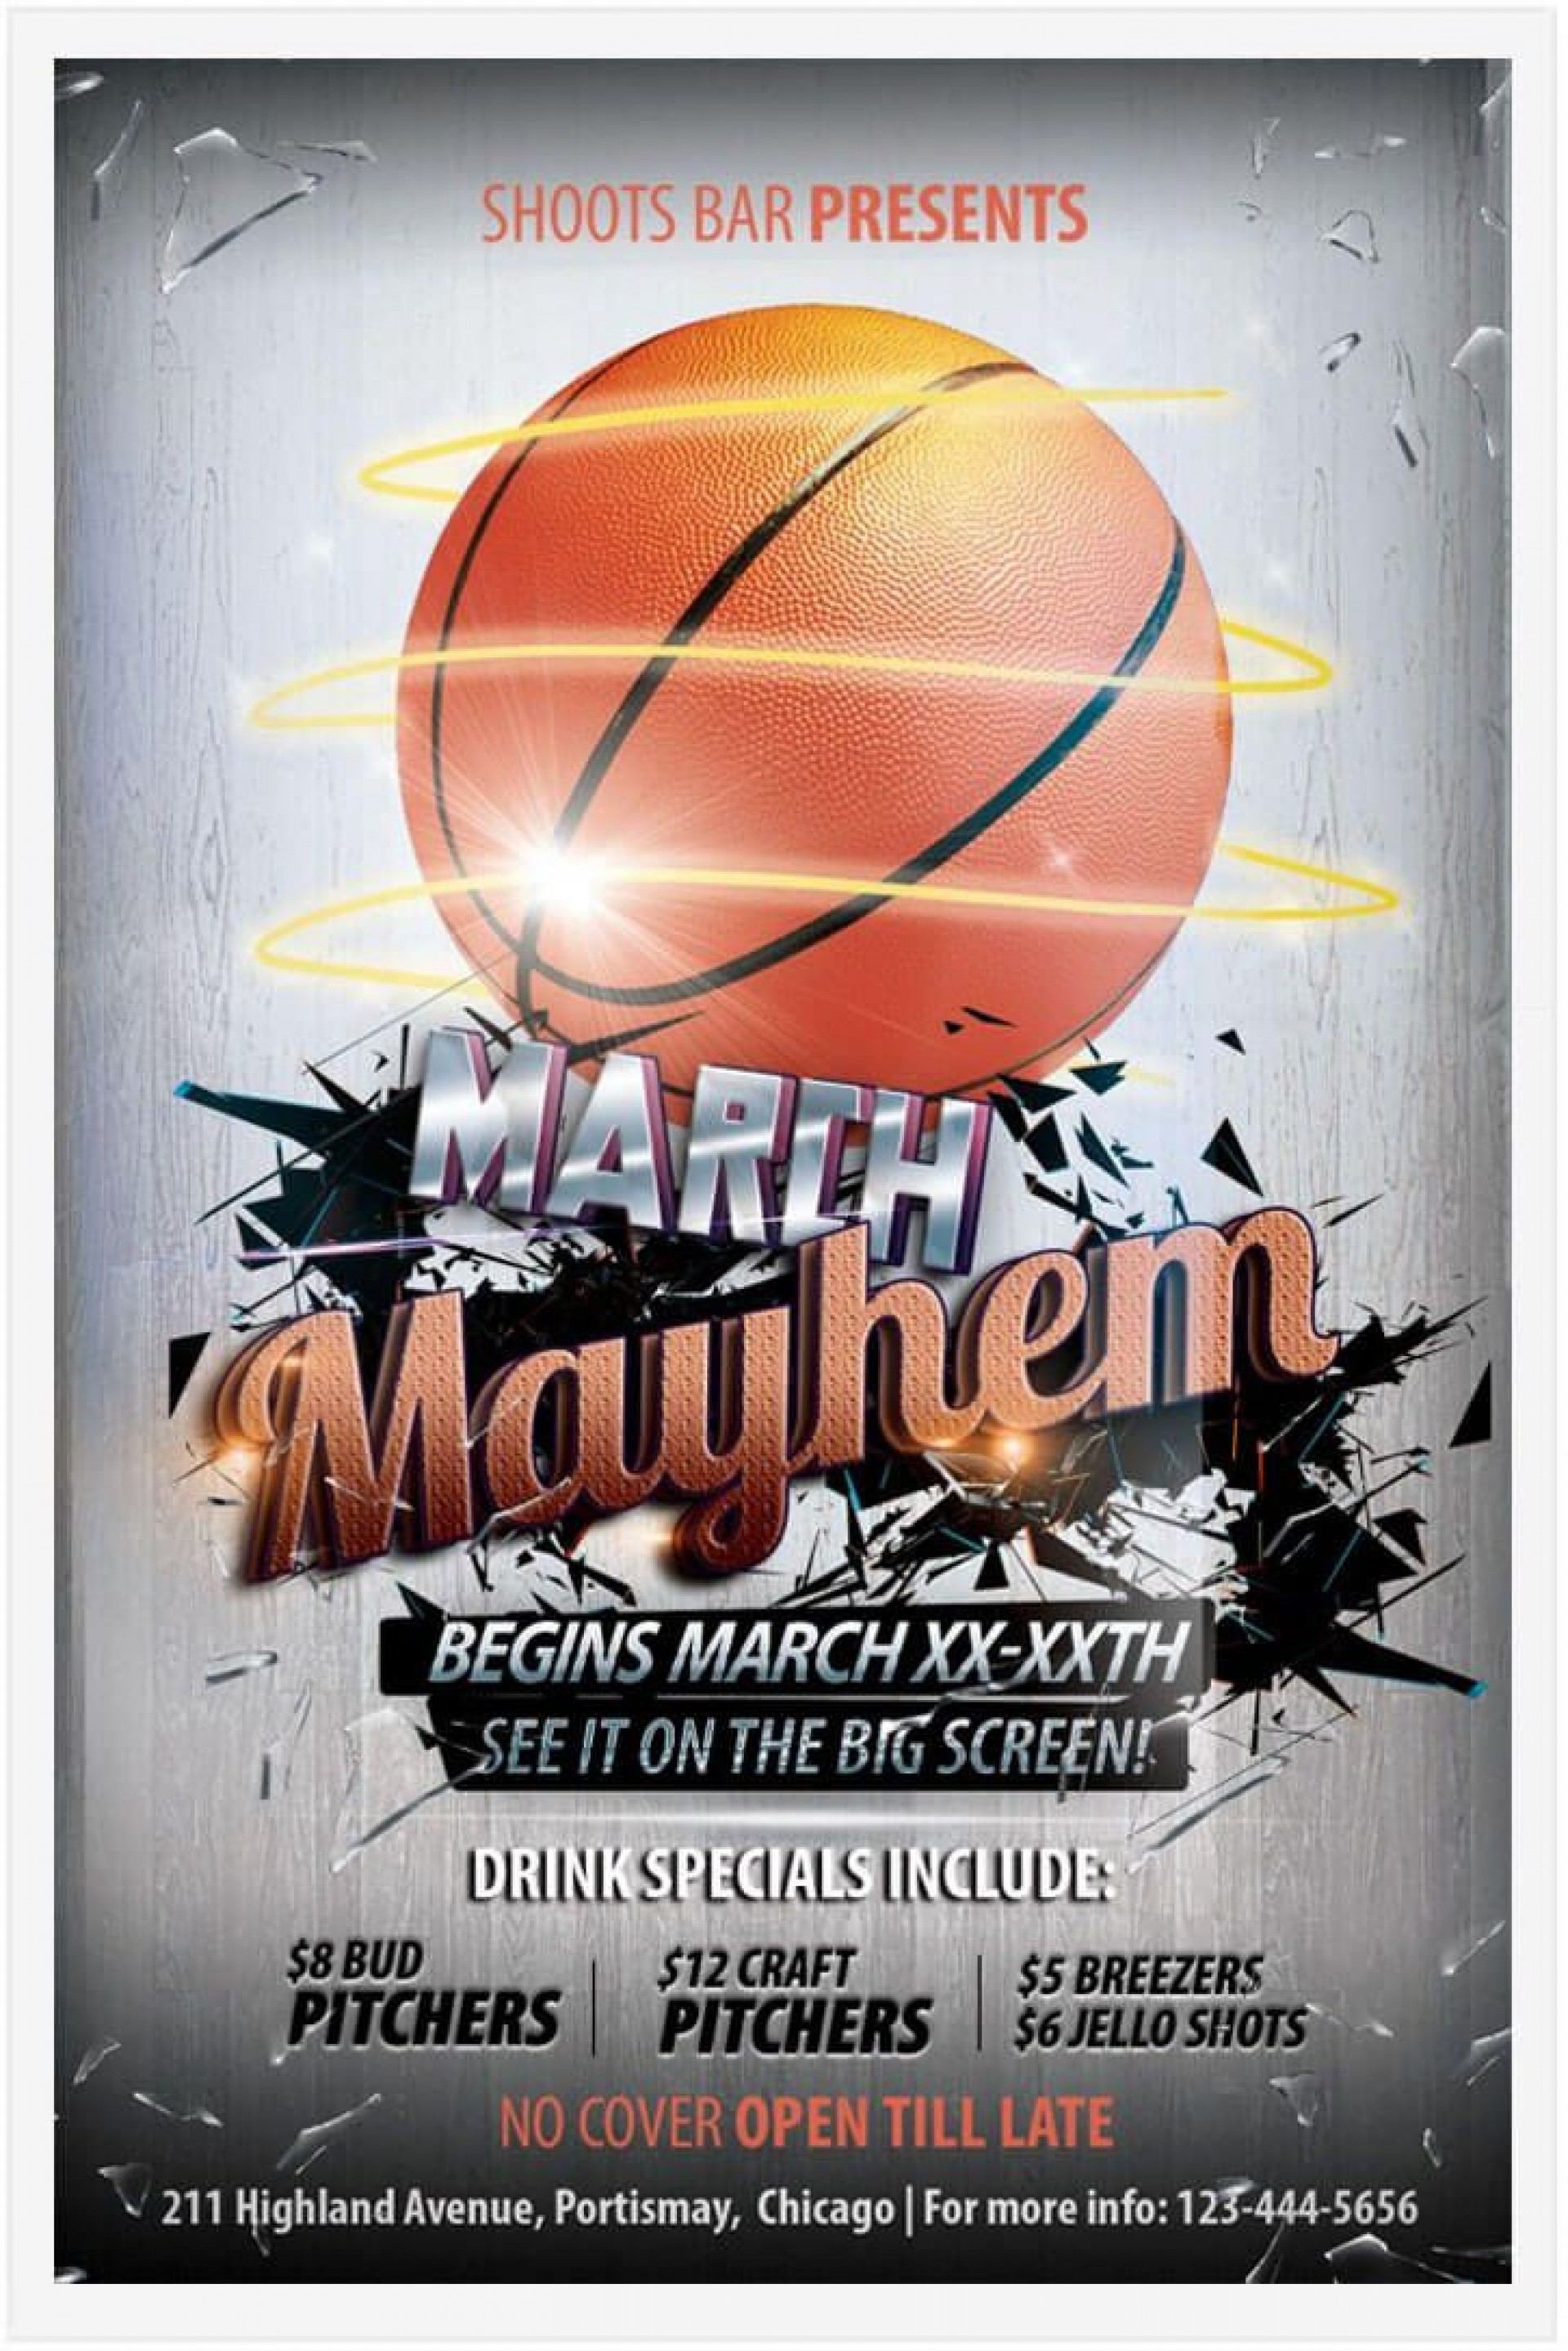 009 Breathtaking Free Basketball Flyer Template High Resolution  Game 3 On Tournament Word1920